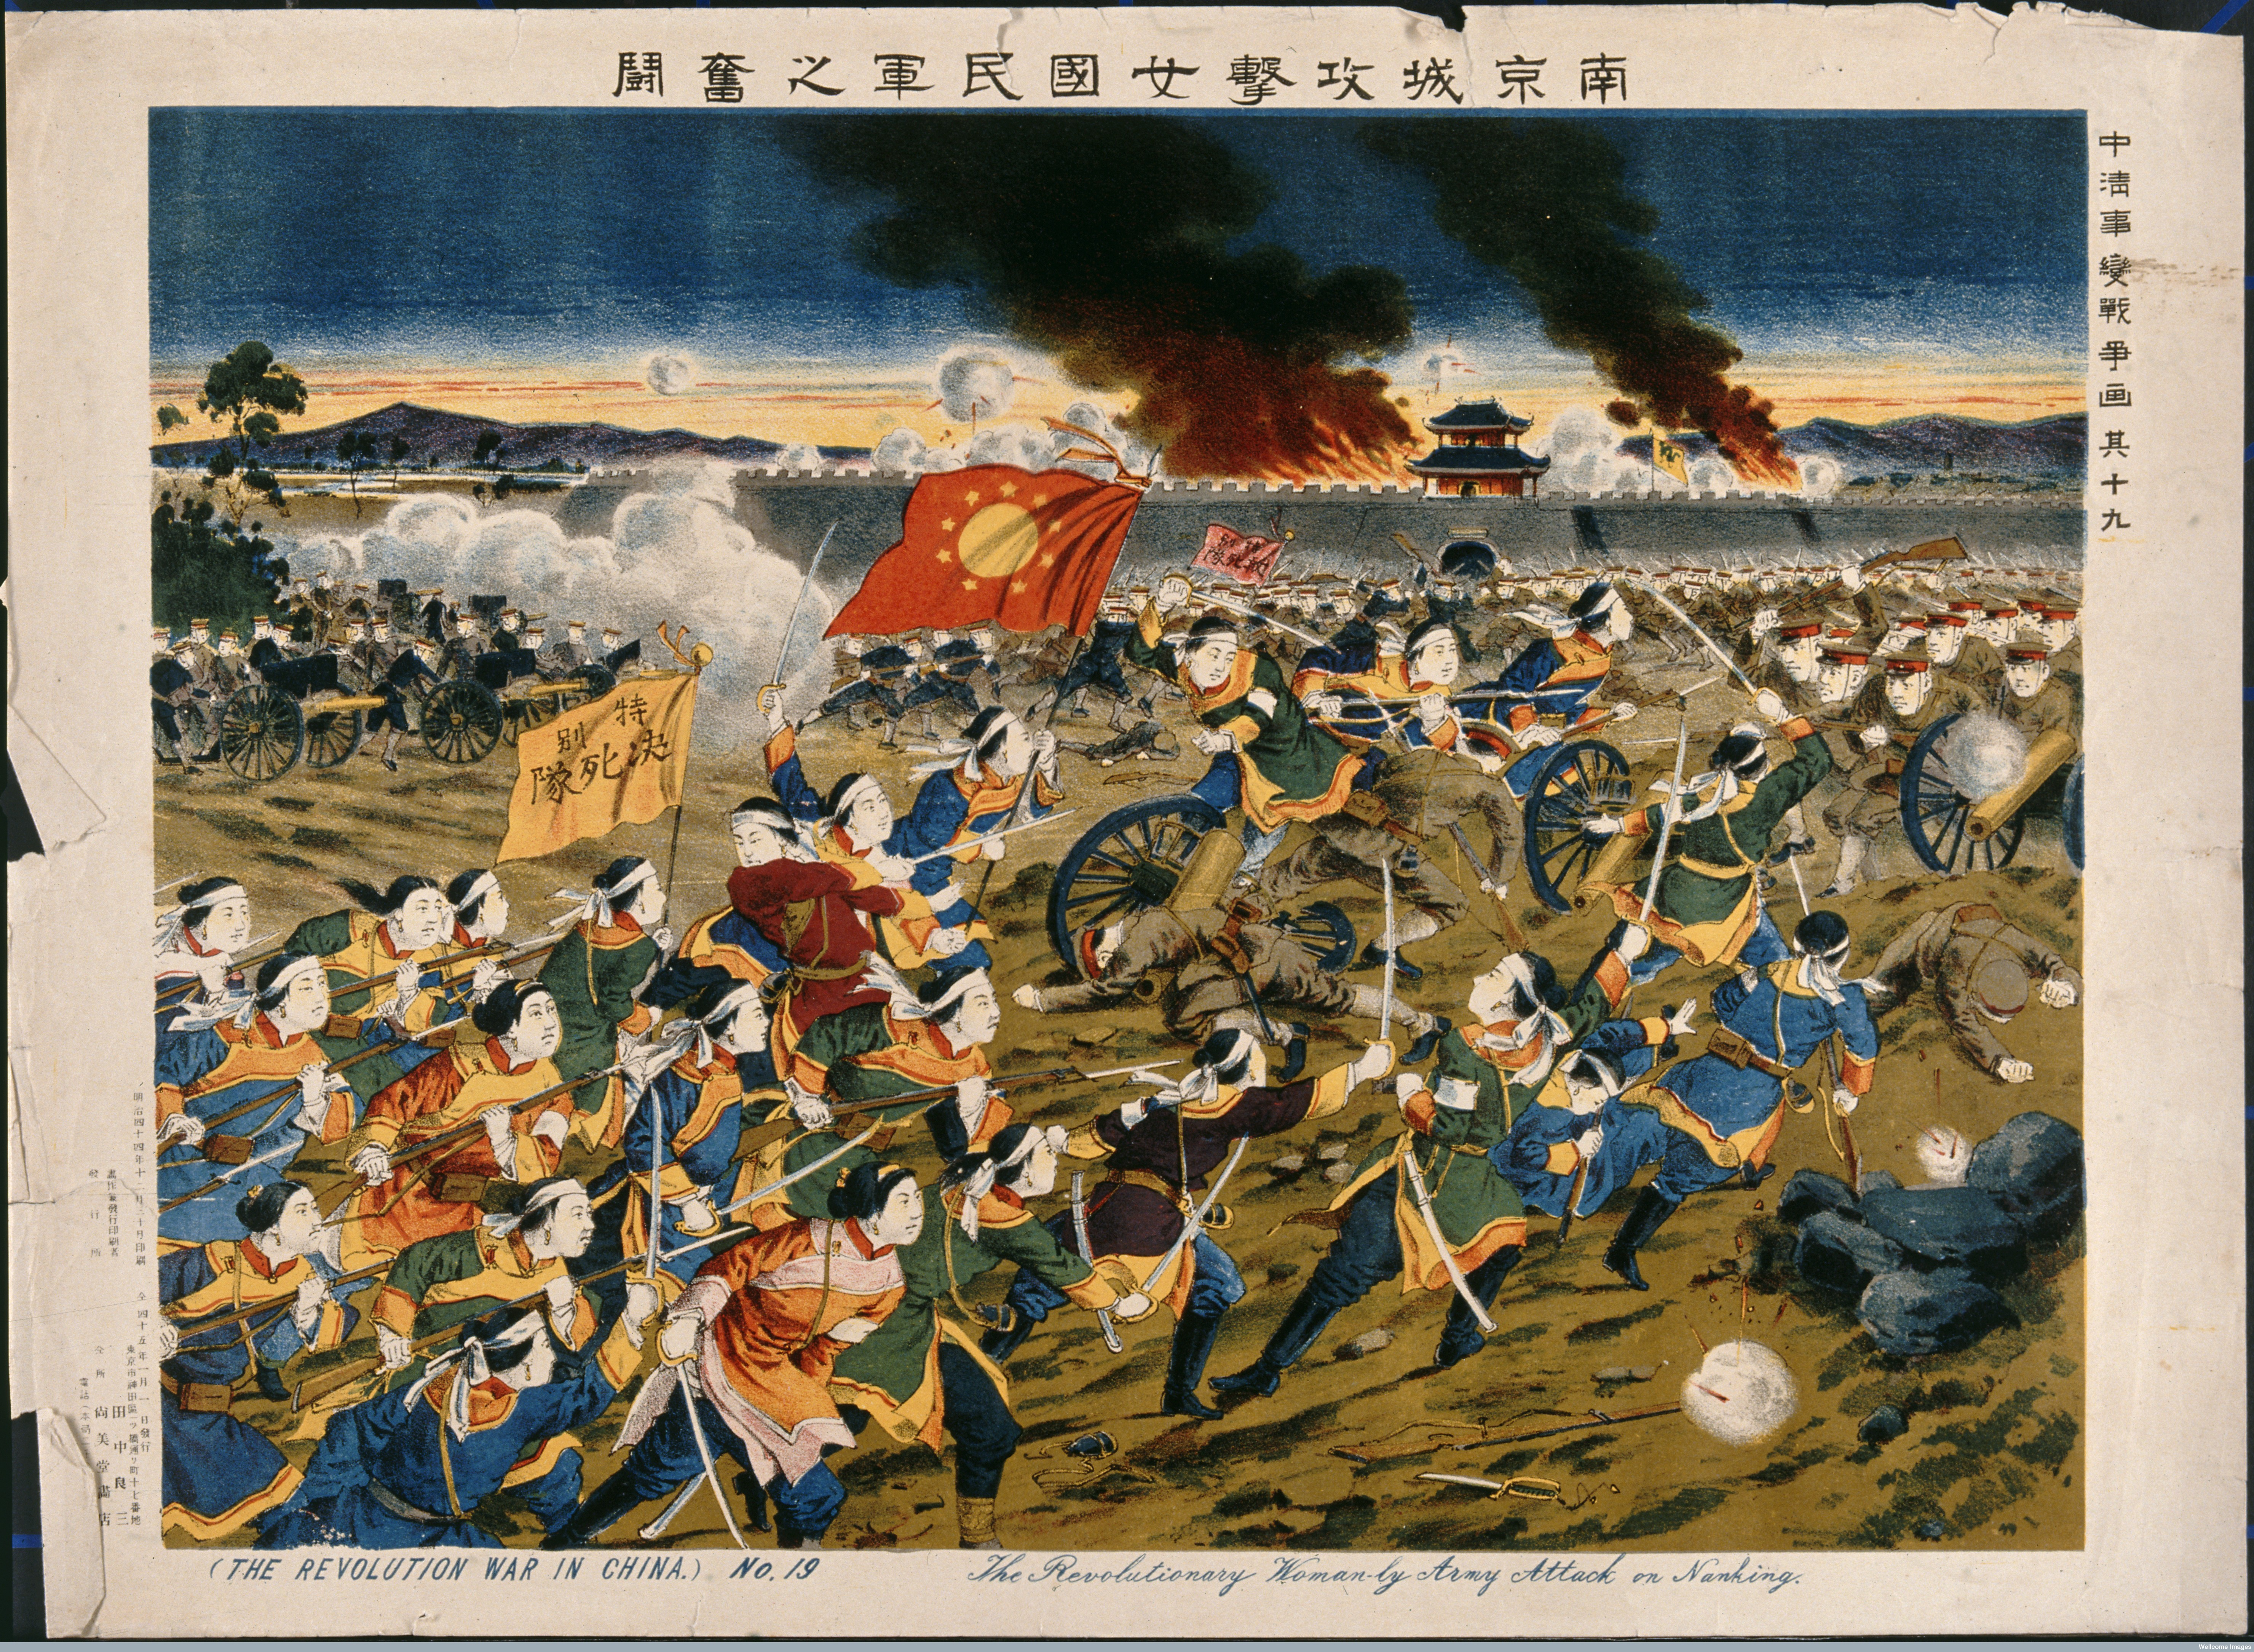 the chinese revolution of 1911 The chinese revolution of 1911: part 2 of podcast 2 from the historical association podcast series on modern chinese history featuring professor rana mitter.